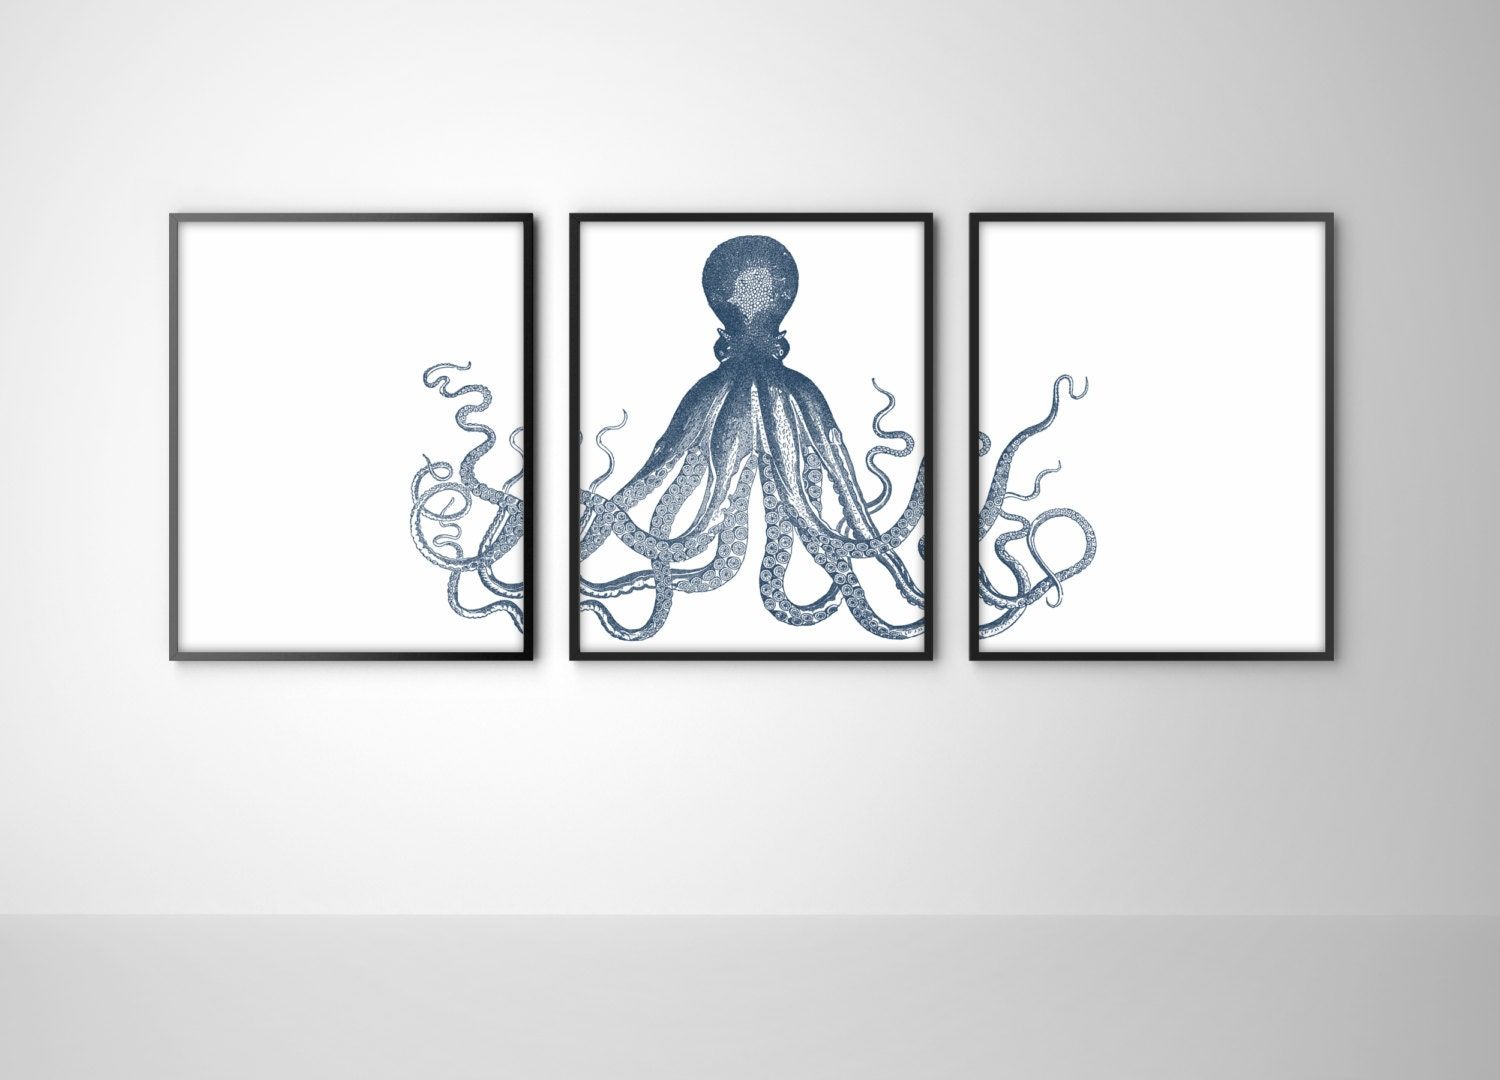 Nautical Octopus Trio - Set of 3 Art Prints - Navy Blue Octopus Triptych - Beach House, Bathroom, Nursery Decor - BySamantha